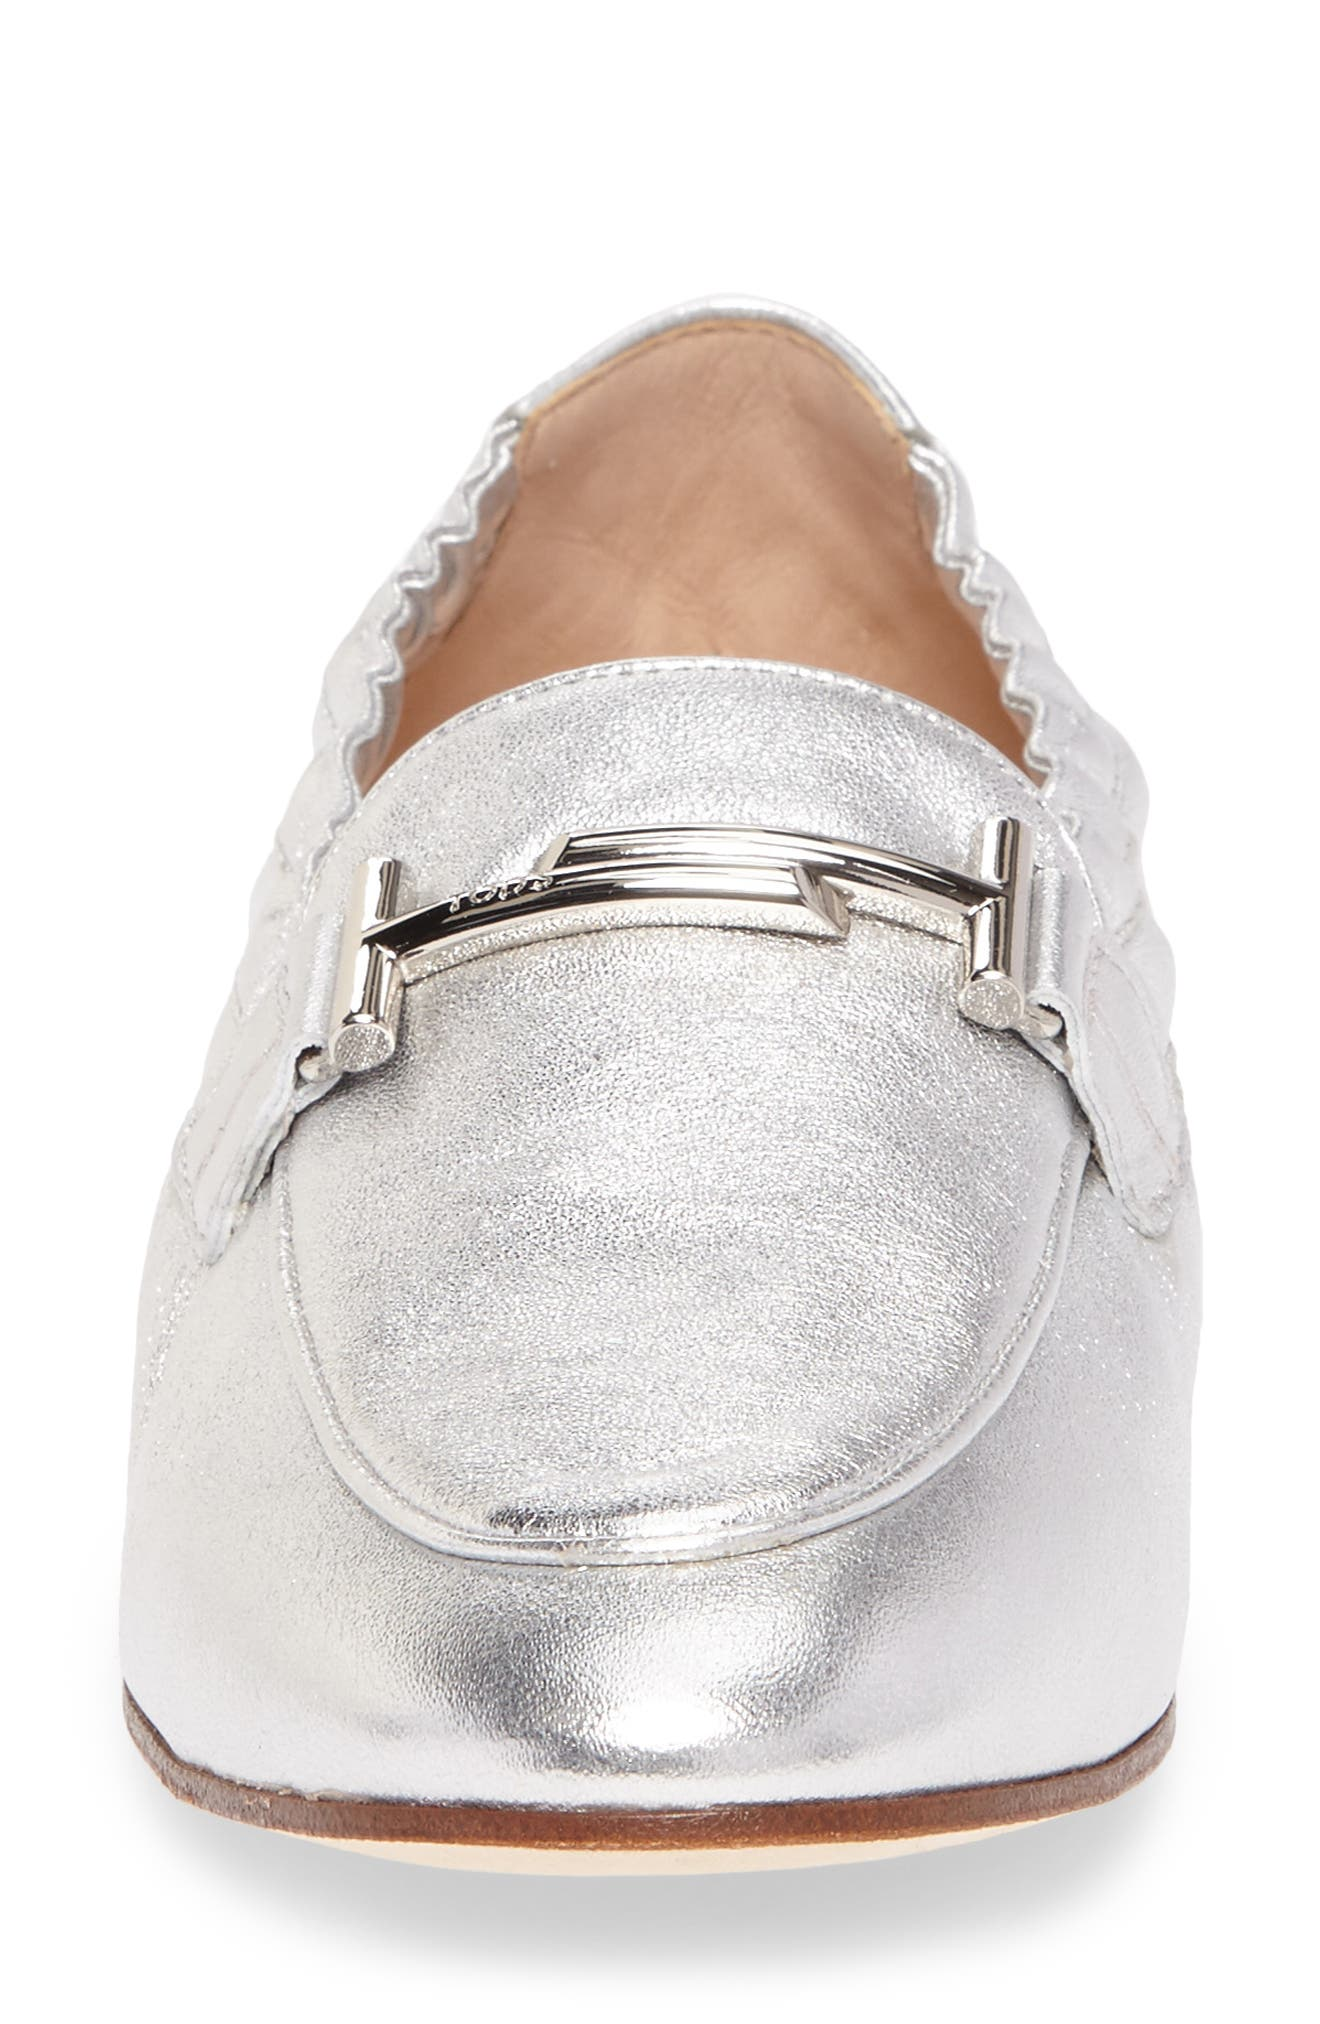 Double T Scrunch Loafer,                             Alternate thumbnail 4, color,                             Silver